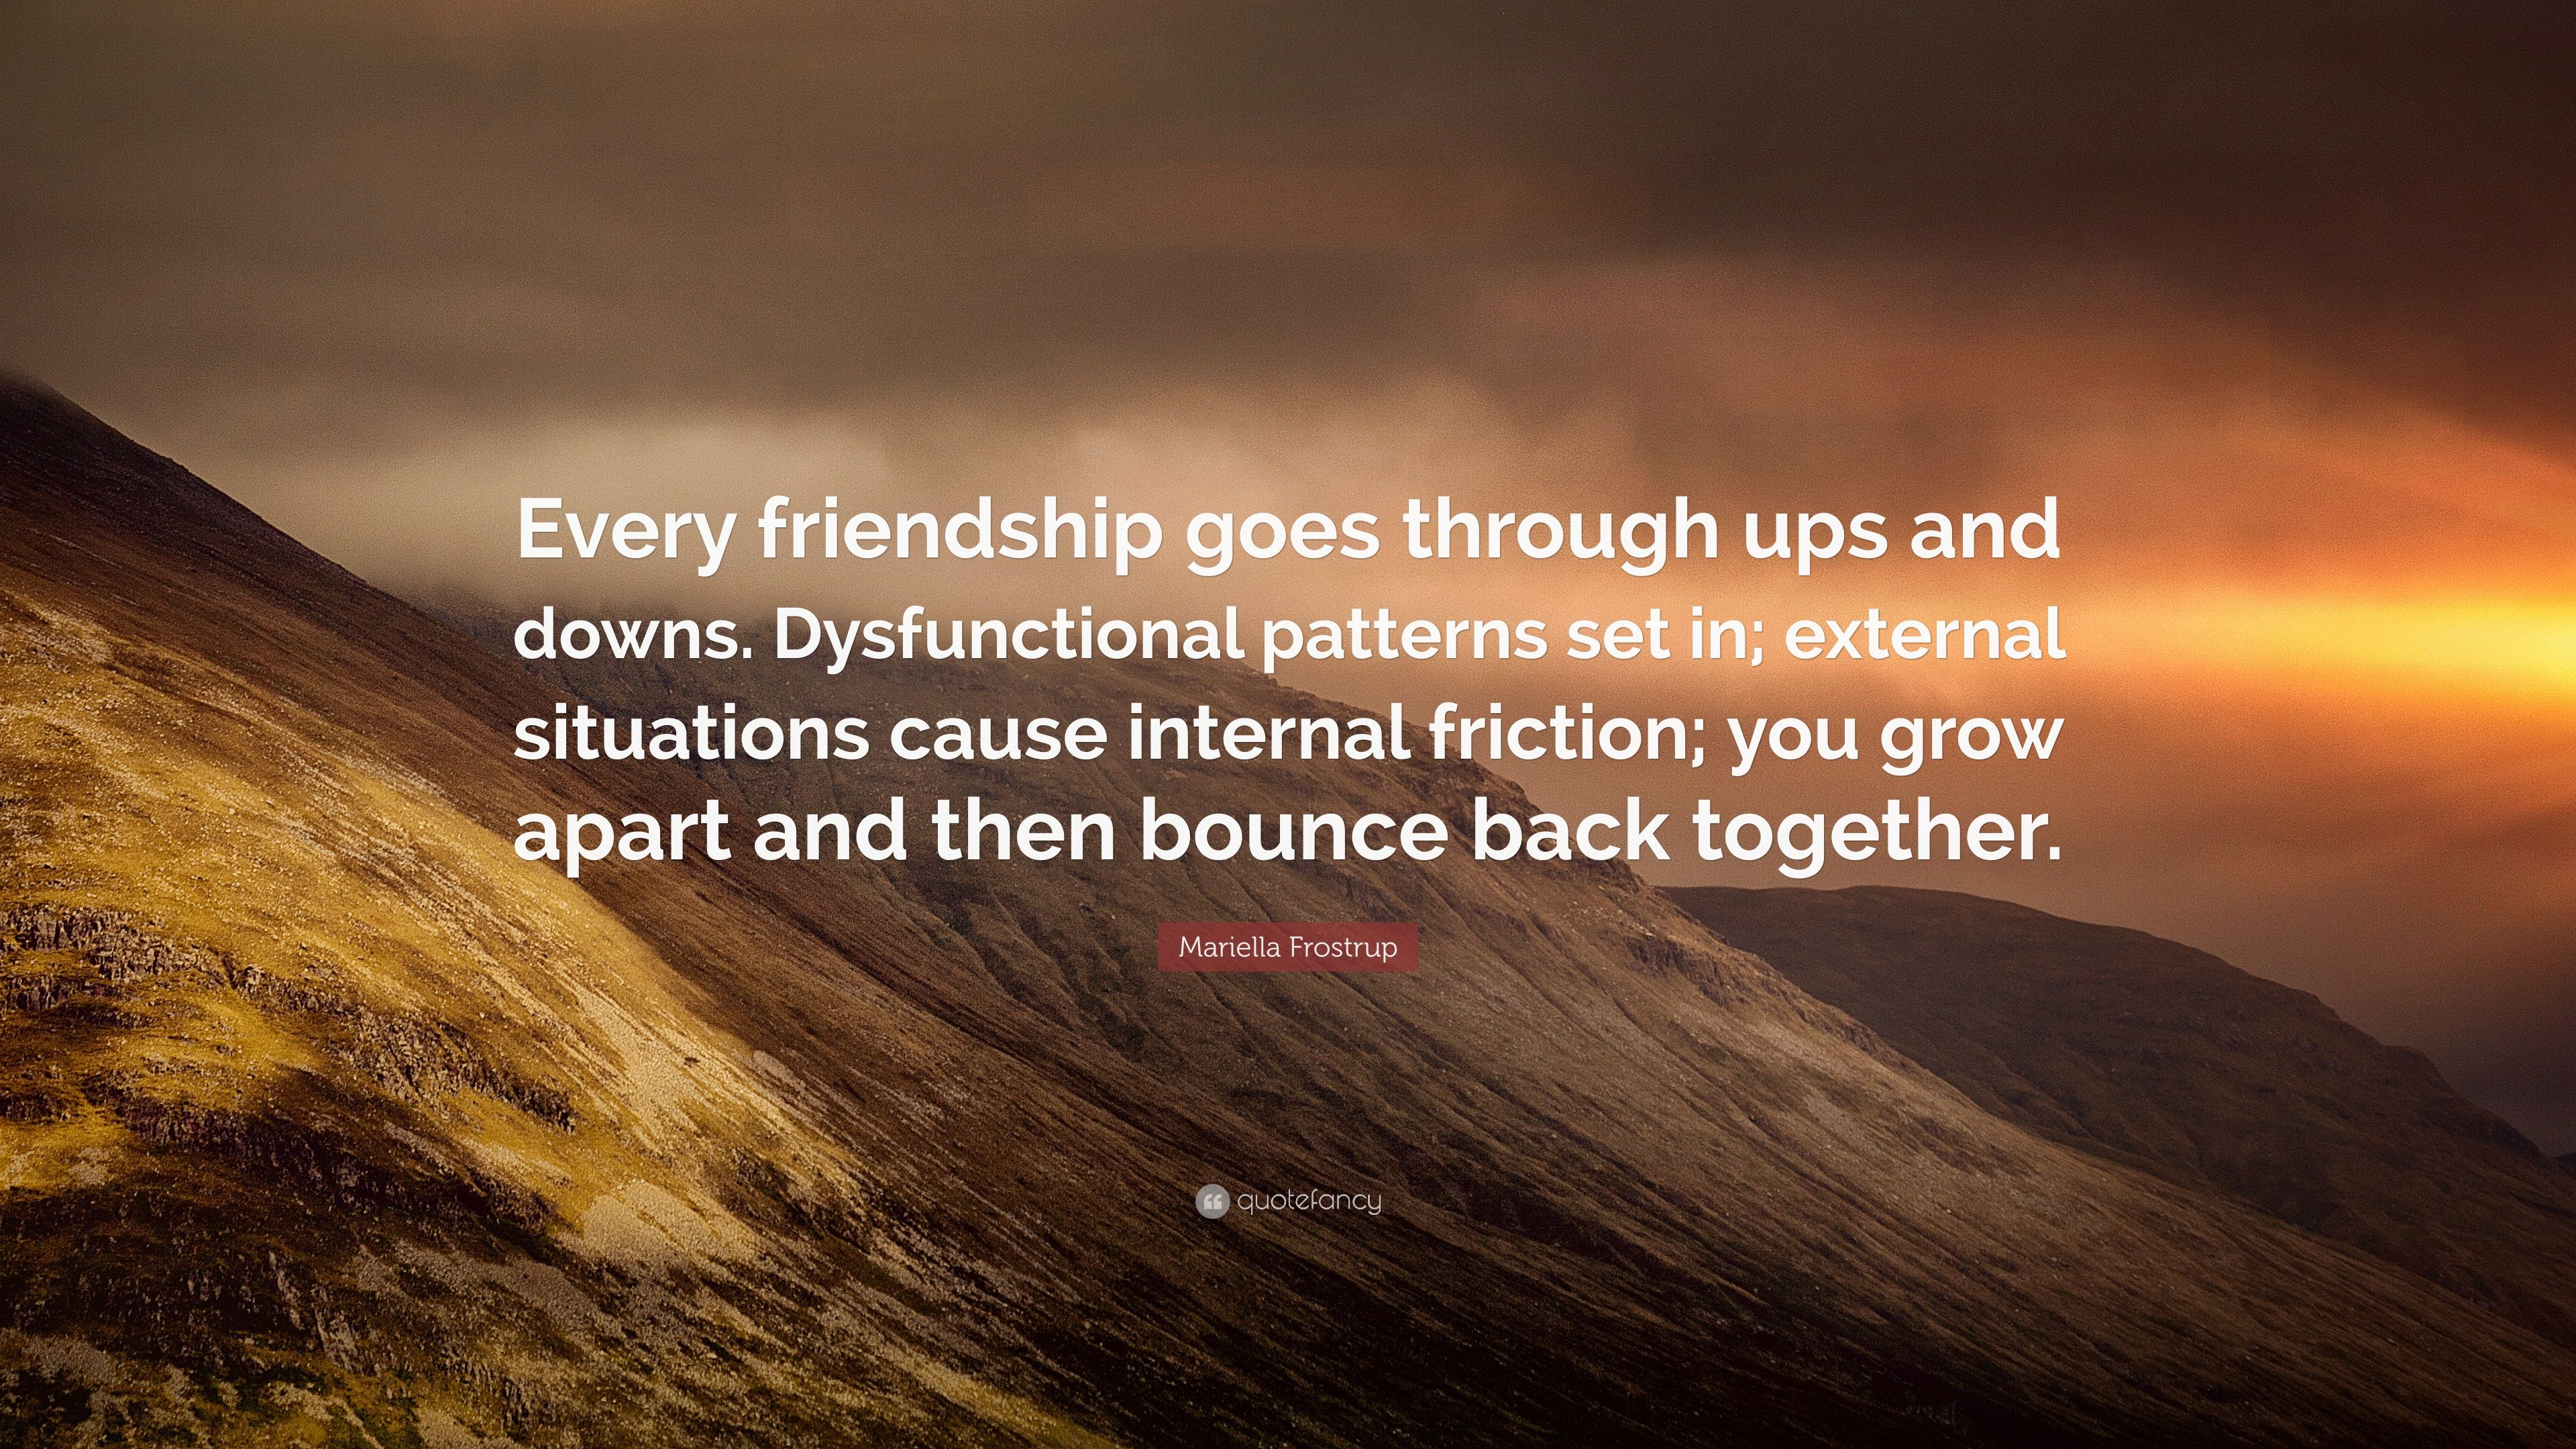 Mariella Frostrup Quote Every Friendship Goes Through Ups And Downs Dysfunctional Patterns Set In External Situations Cause Internal Friction 7 Wallpapers Quotefancy